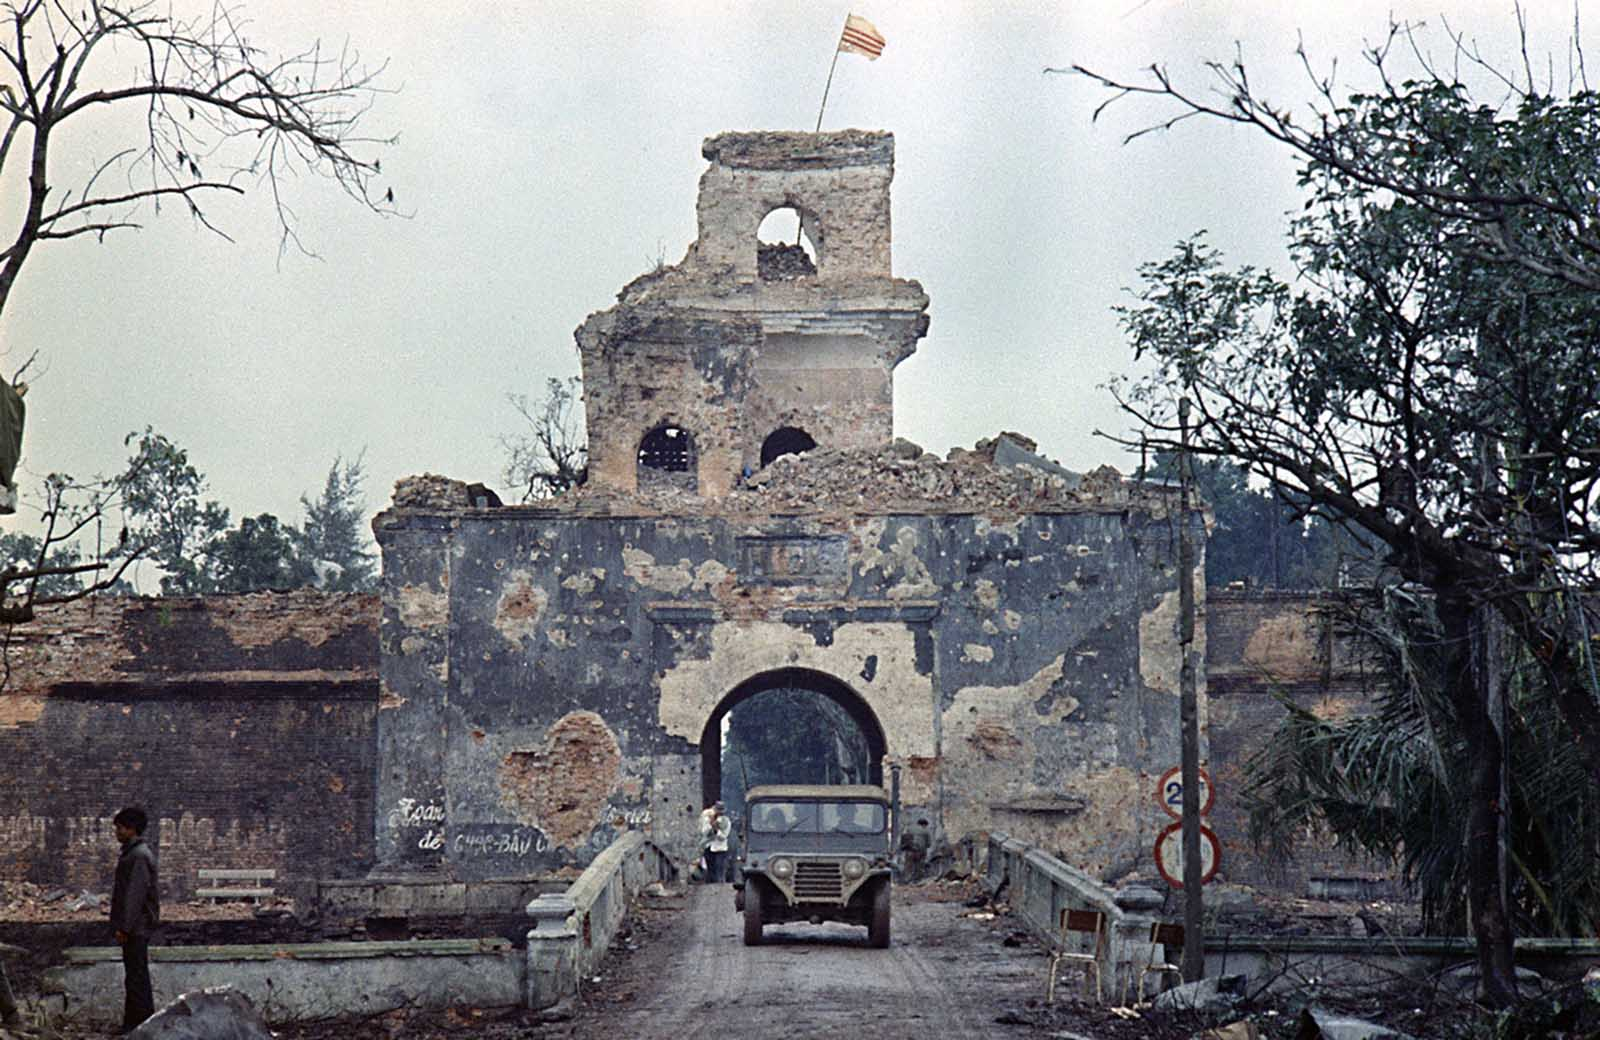 The flag of the Republic of Vietnam flies atop a tower of the main fortified structure in the old citadel as a jeep crosses a bridge over a moat in Hue during the Tet Offensive, February 1968.